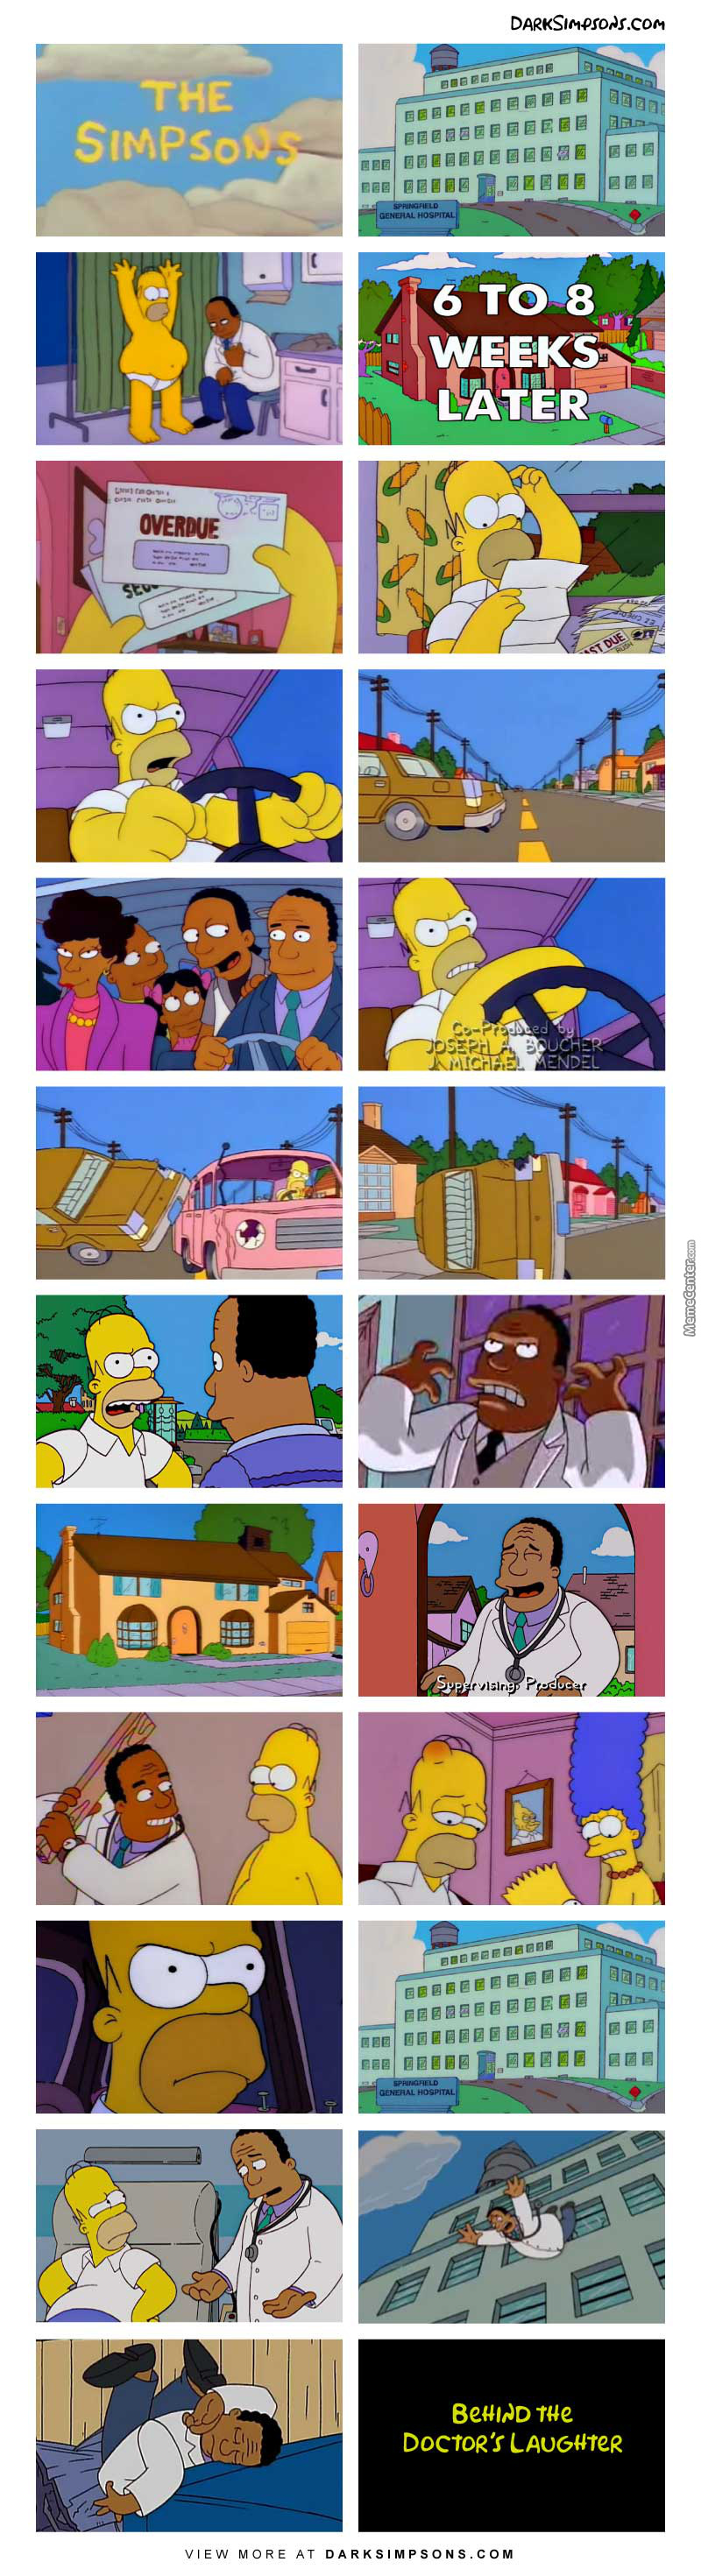 Dr. Hibbert: We're Going To Cut You Open, And Tinker With Your Ticker.